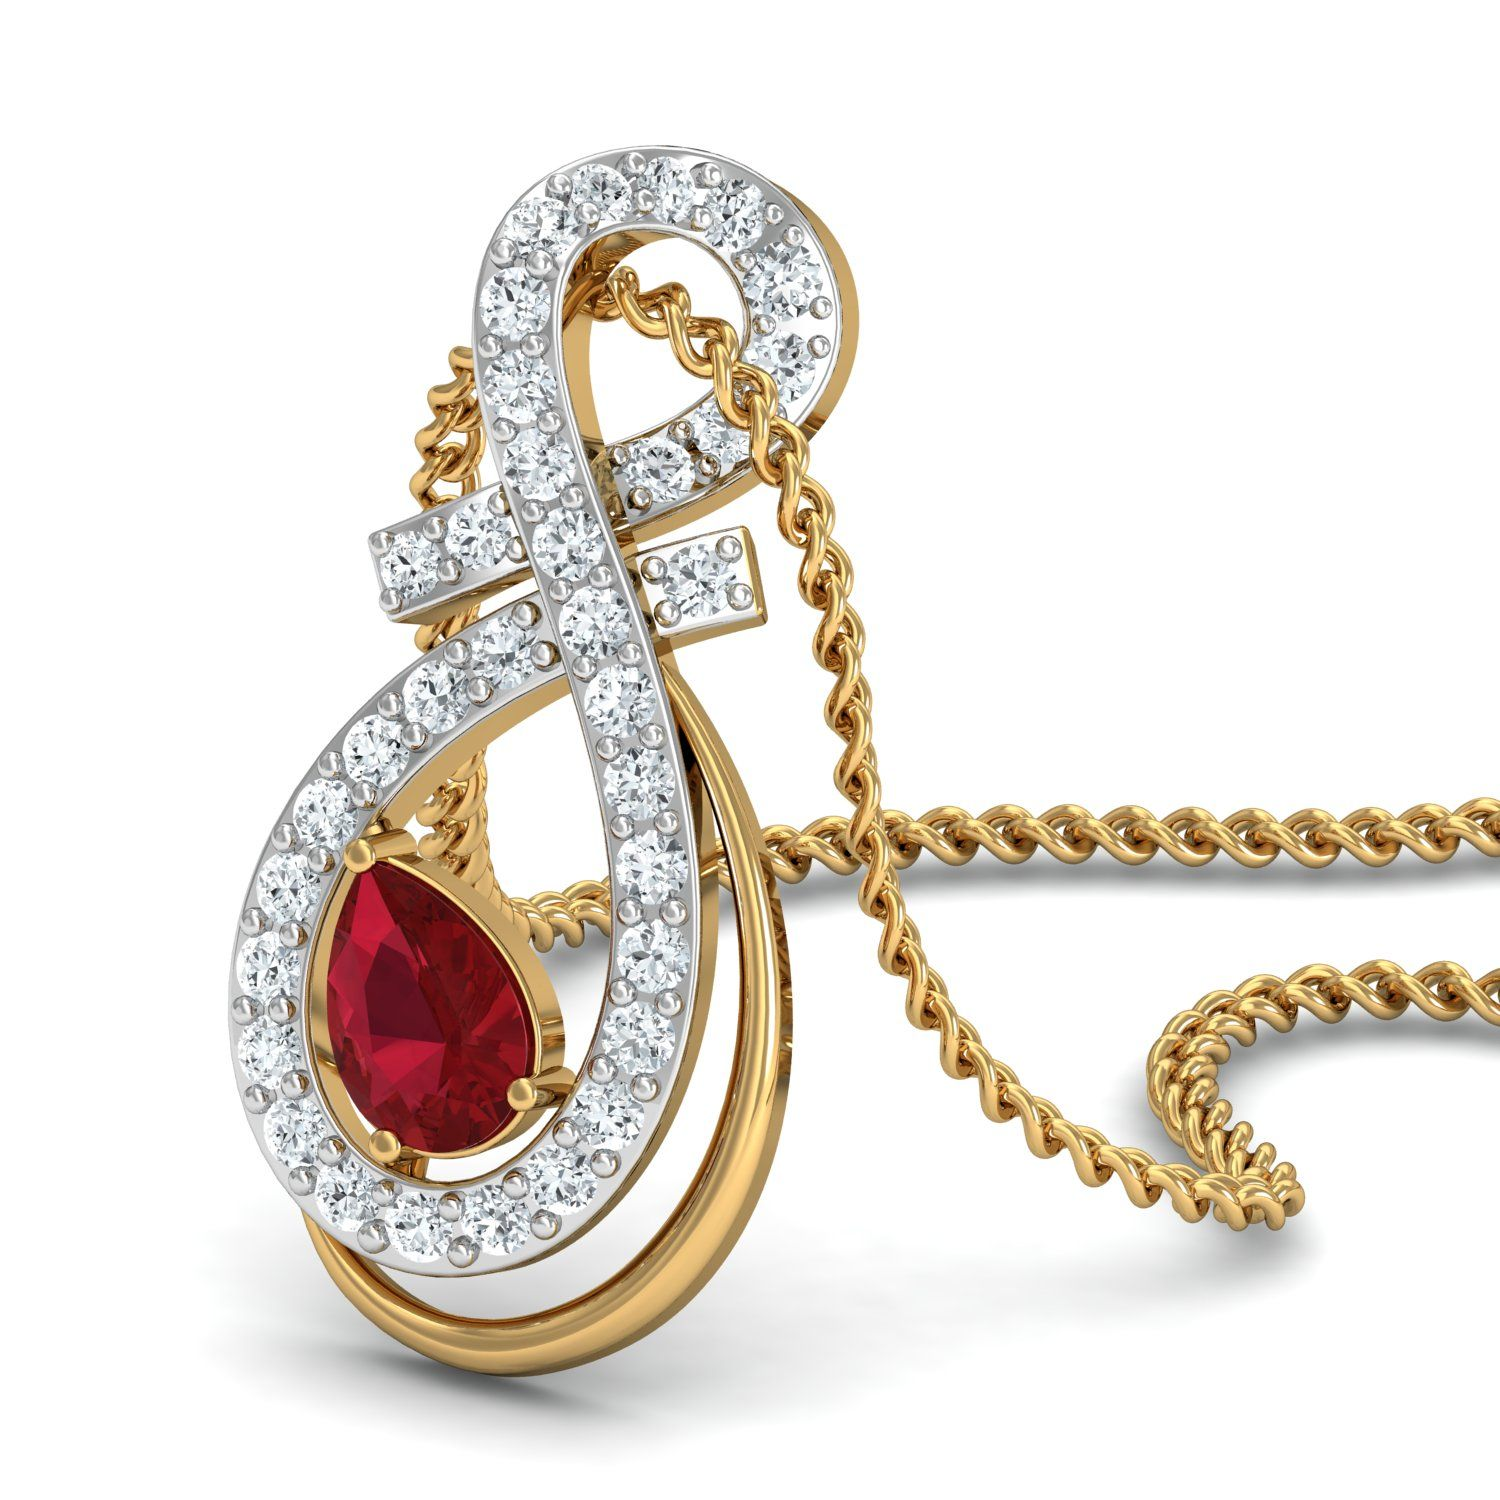 cd50363cbde Ruby Gemstone Pendant 0.23 Ct Real Certified Diamond Solid Gold ...